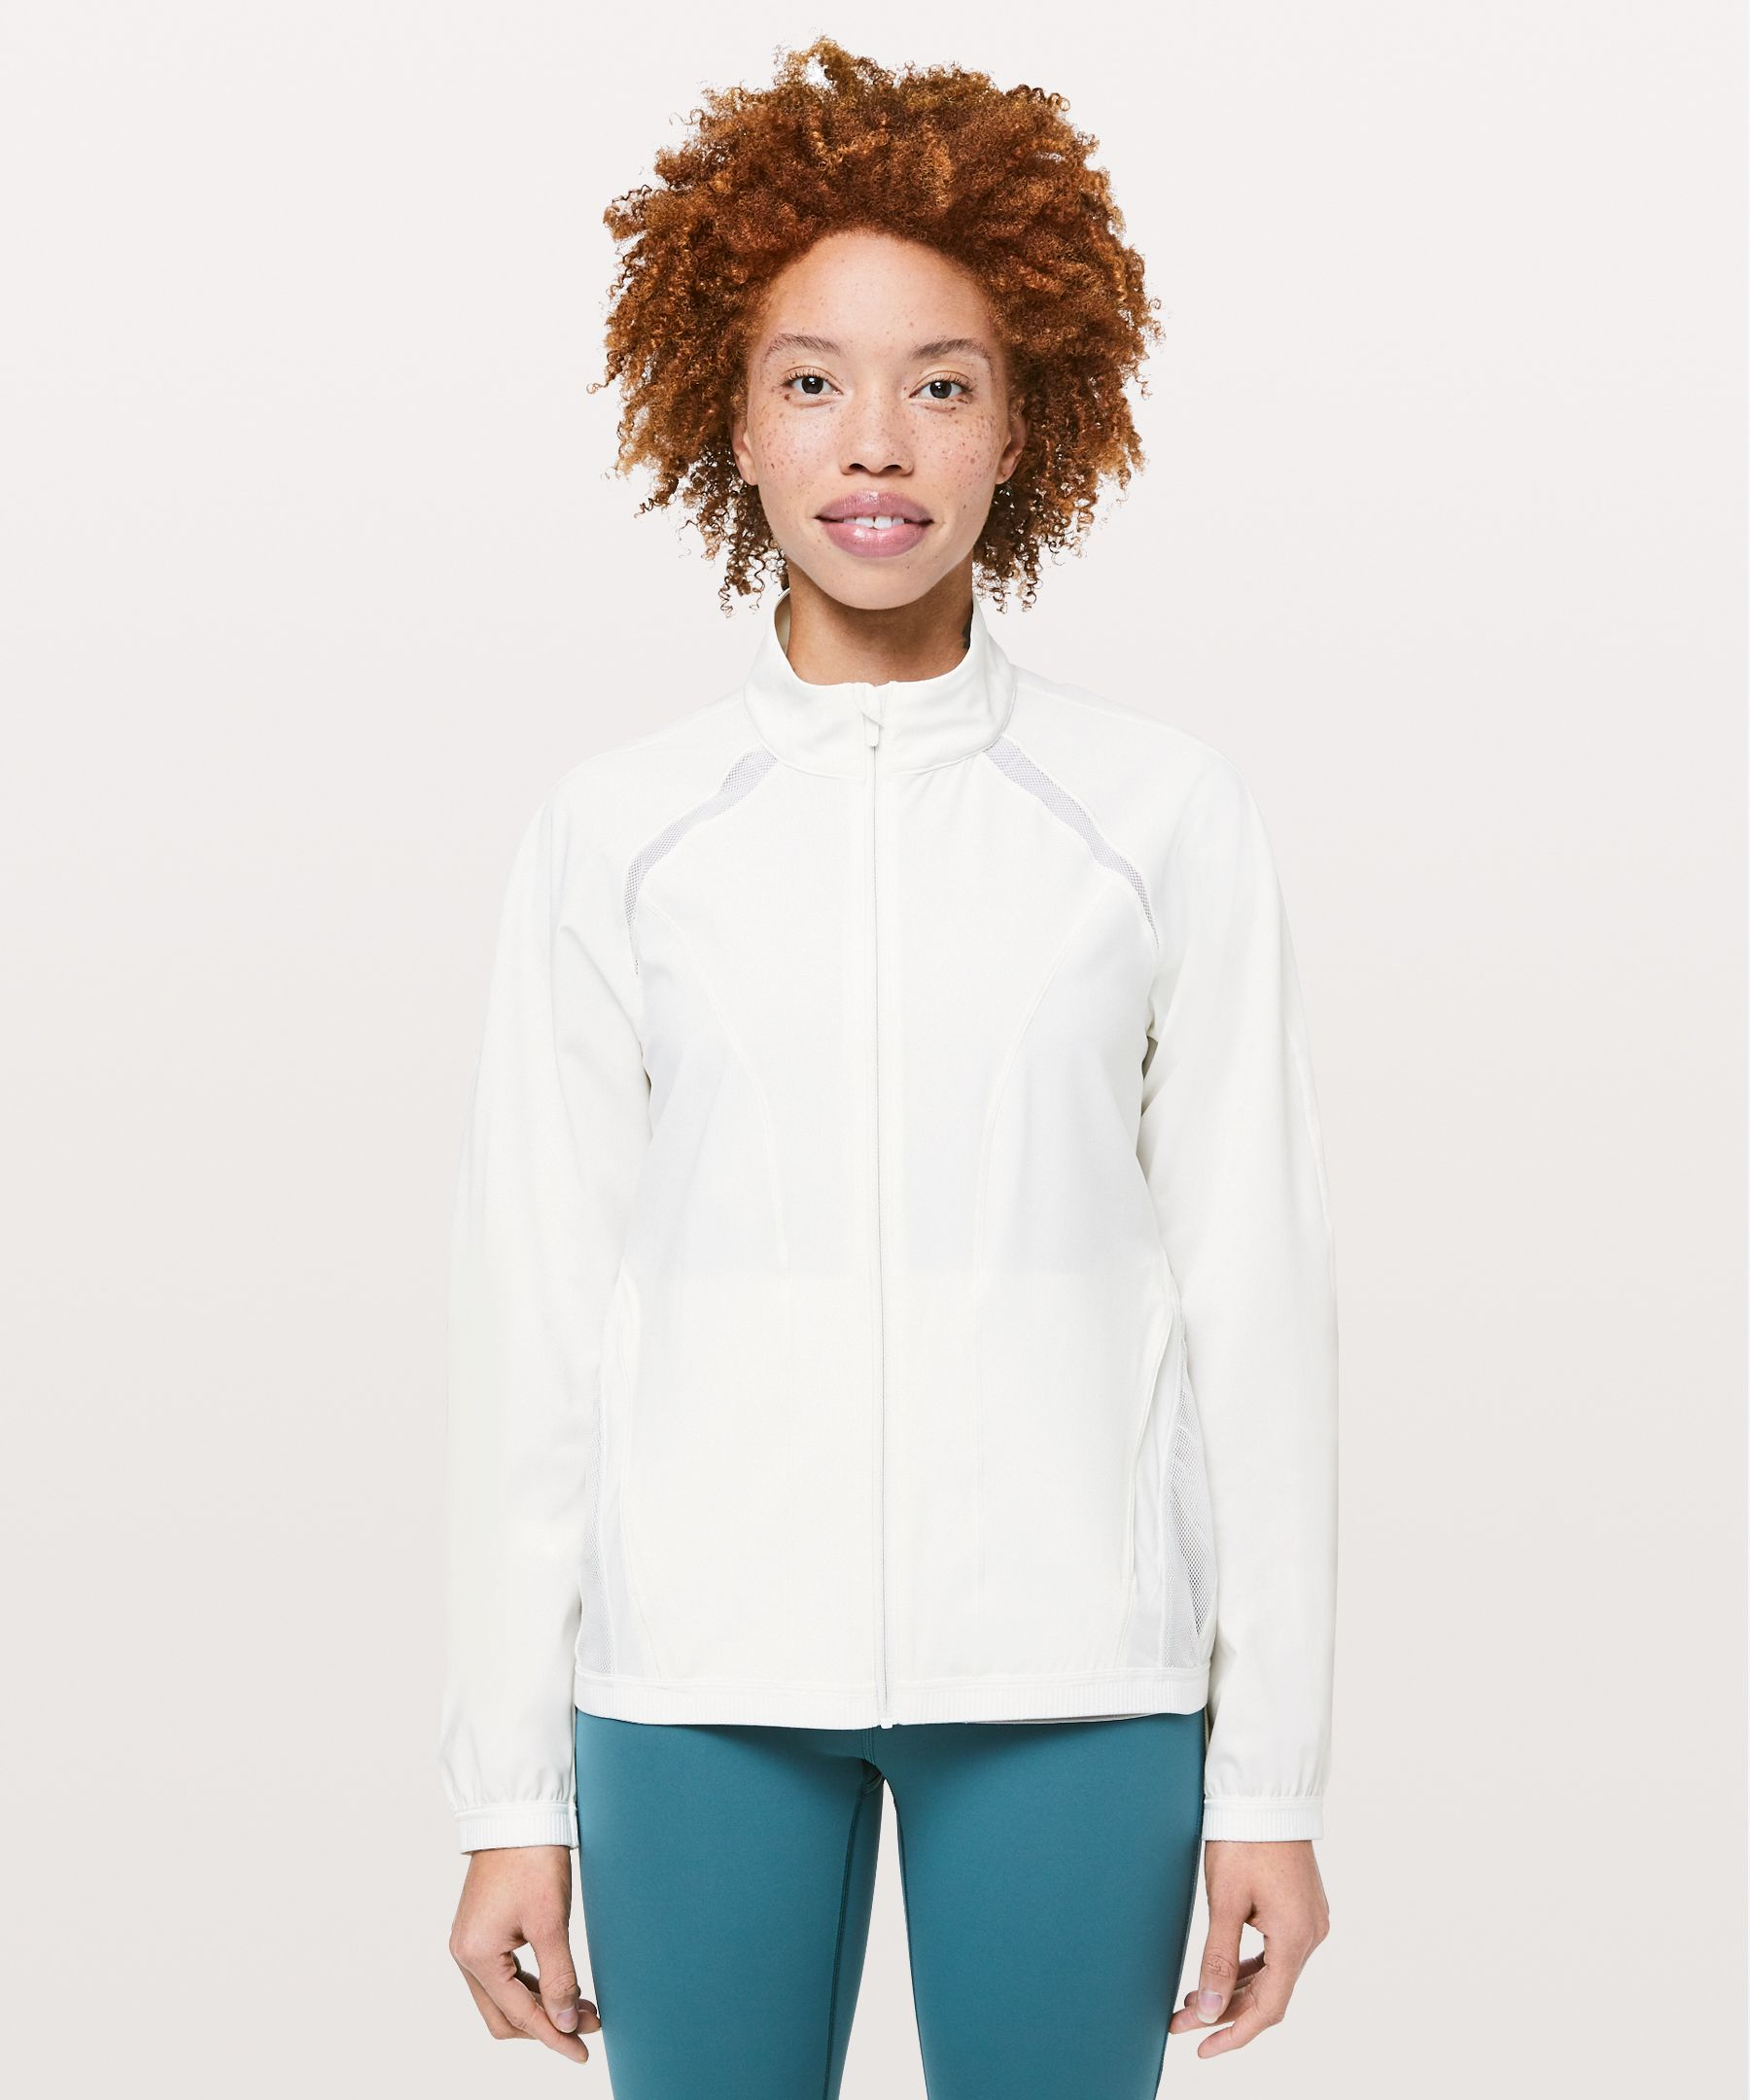 Toss on this lightweight,  strategically-ventilated  jacket when you need breezy  coverage.